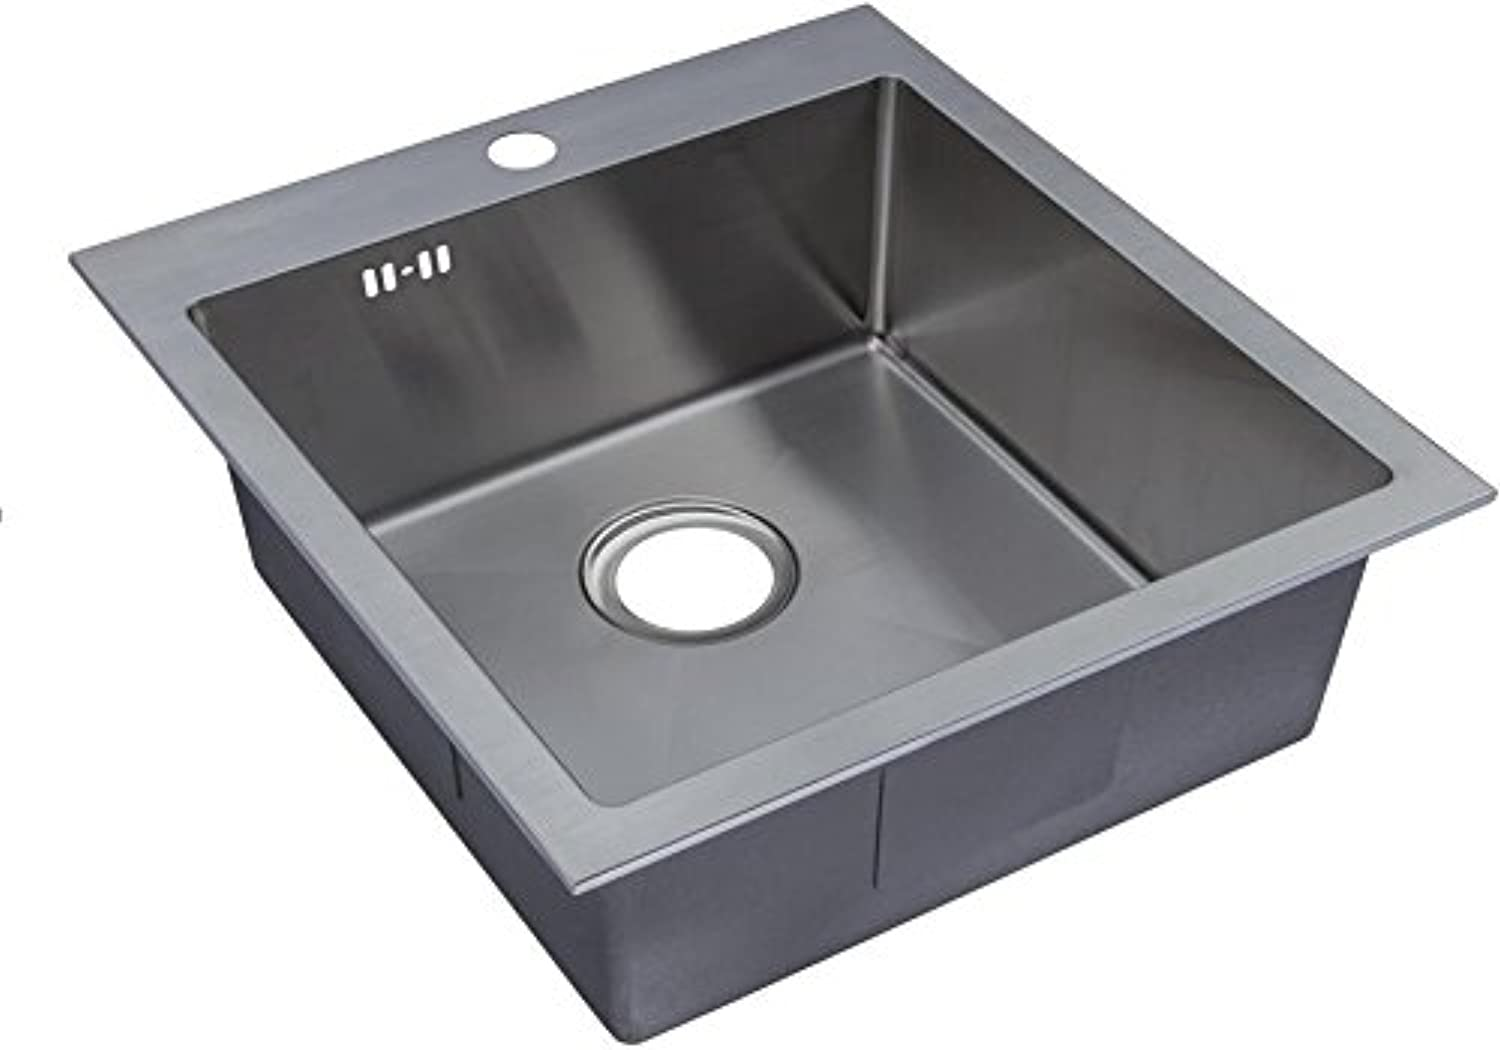 560 x 500 mm Top Mount Inset Single Bowl Handmade Satin Stainless Steel Kitchen Sink With Tap Hole, Easy Clean Corners & Waste (DS026-1)